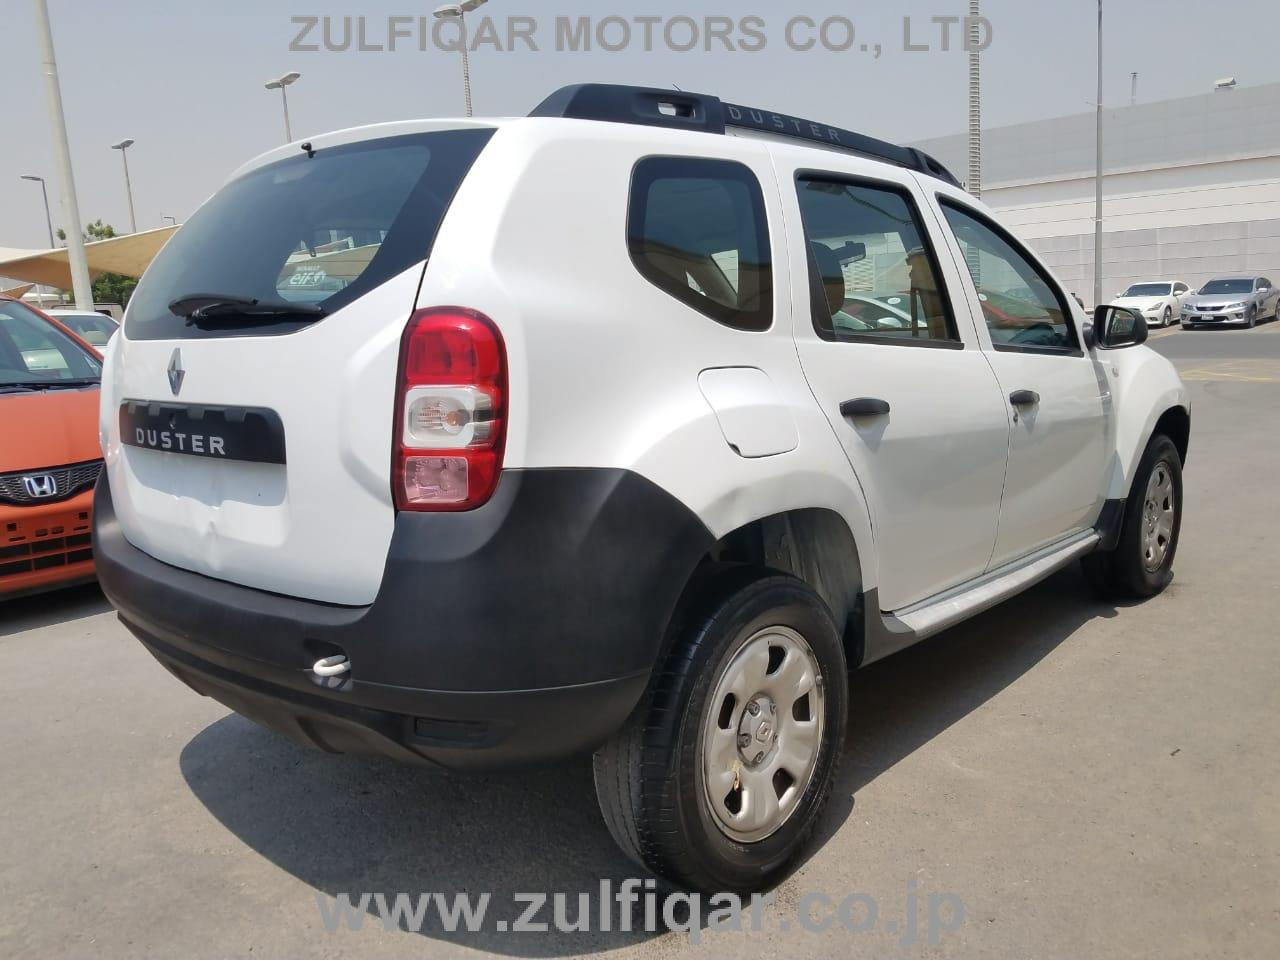 RENAULT DUSTER 2015 Image 8